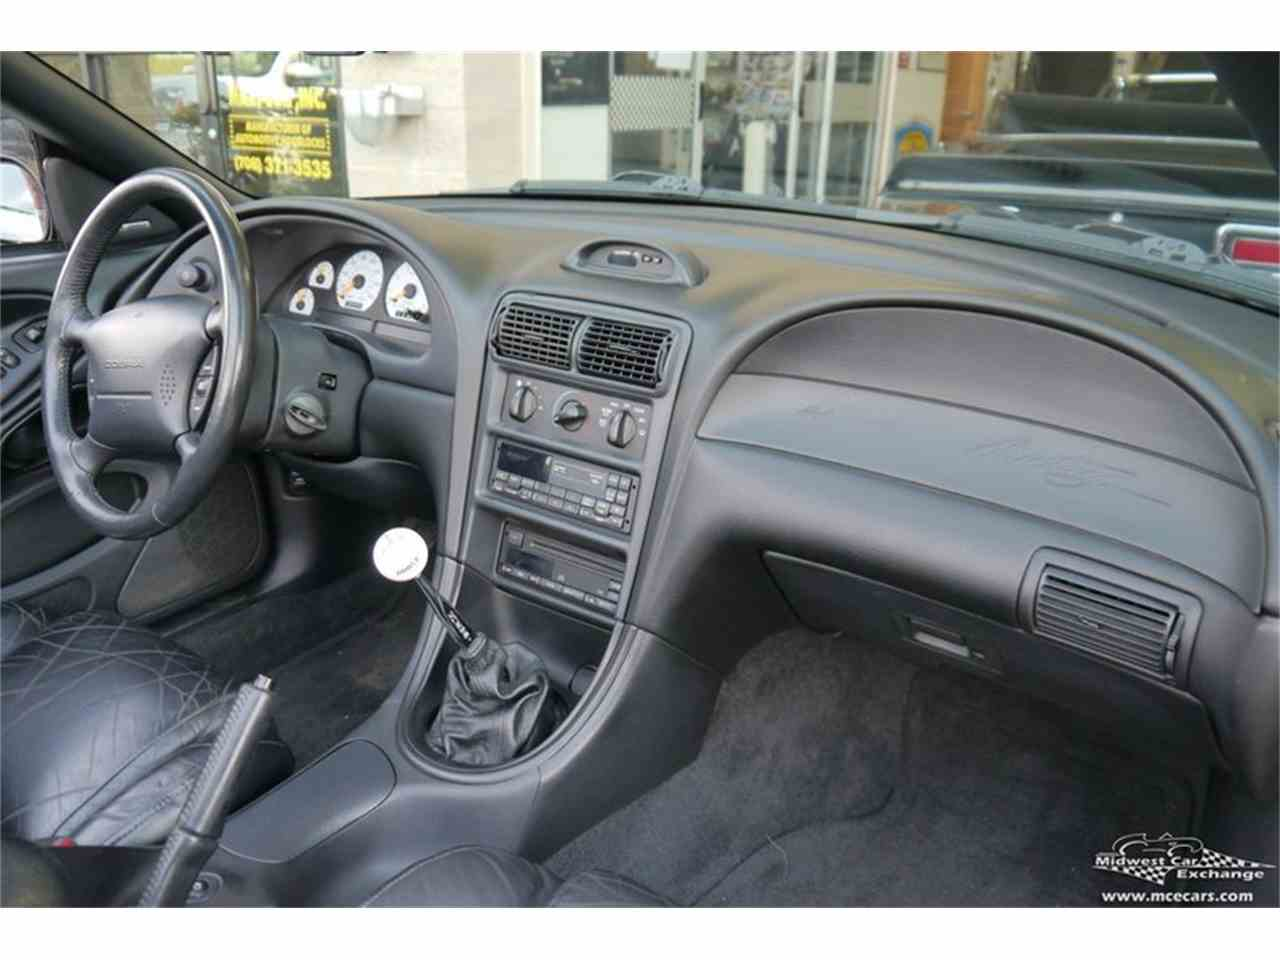 Large Picture of '97 Mustang SVT Cobra located in Alsip Illinois - $16,900.00 - MELK